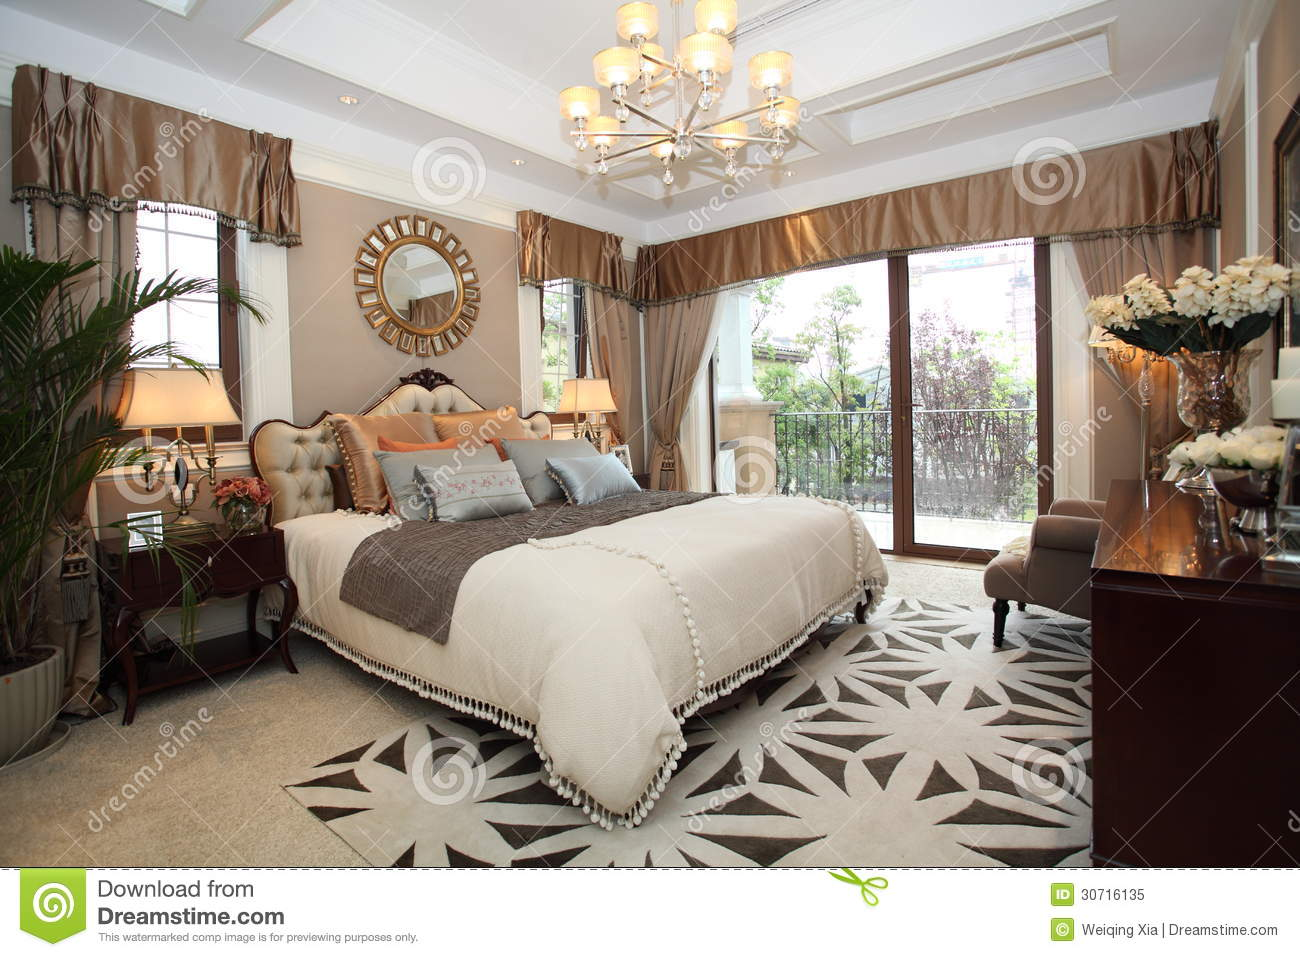 Bedroom Designer Free Luxury Home Bedroom Stock Image Image Of Floor Light